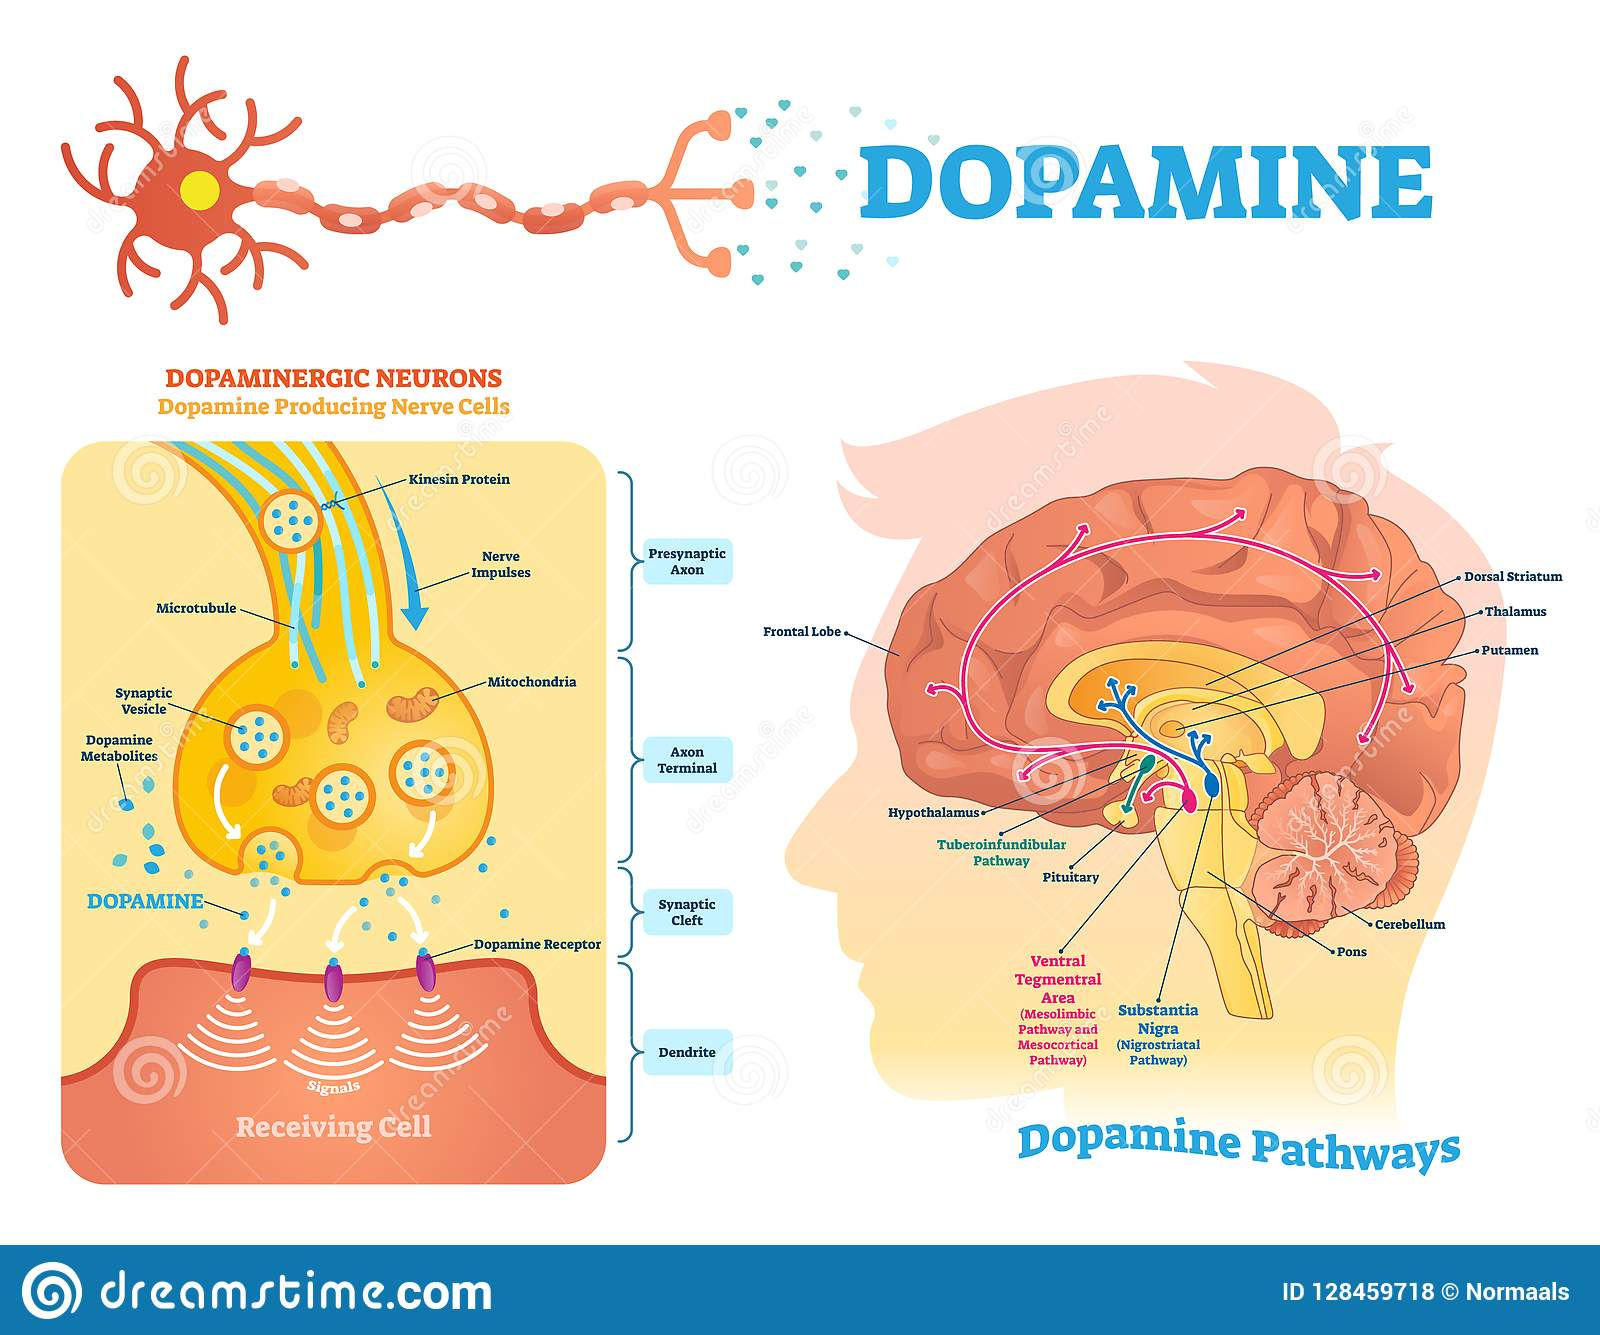 Dopamine vector illustration. Labeled diagram with its action and pathways.